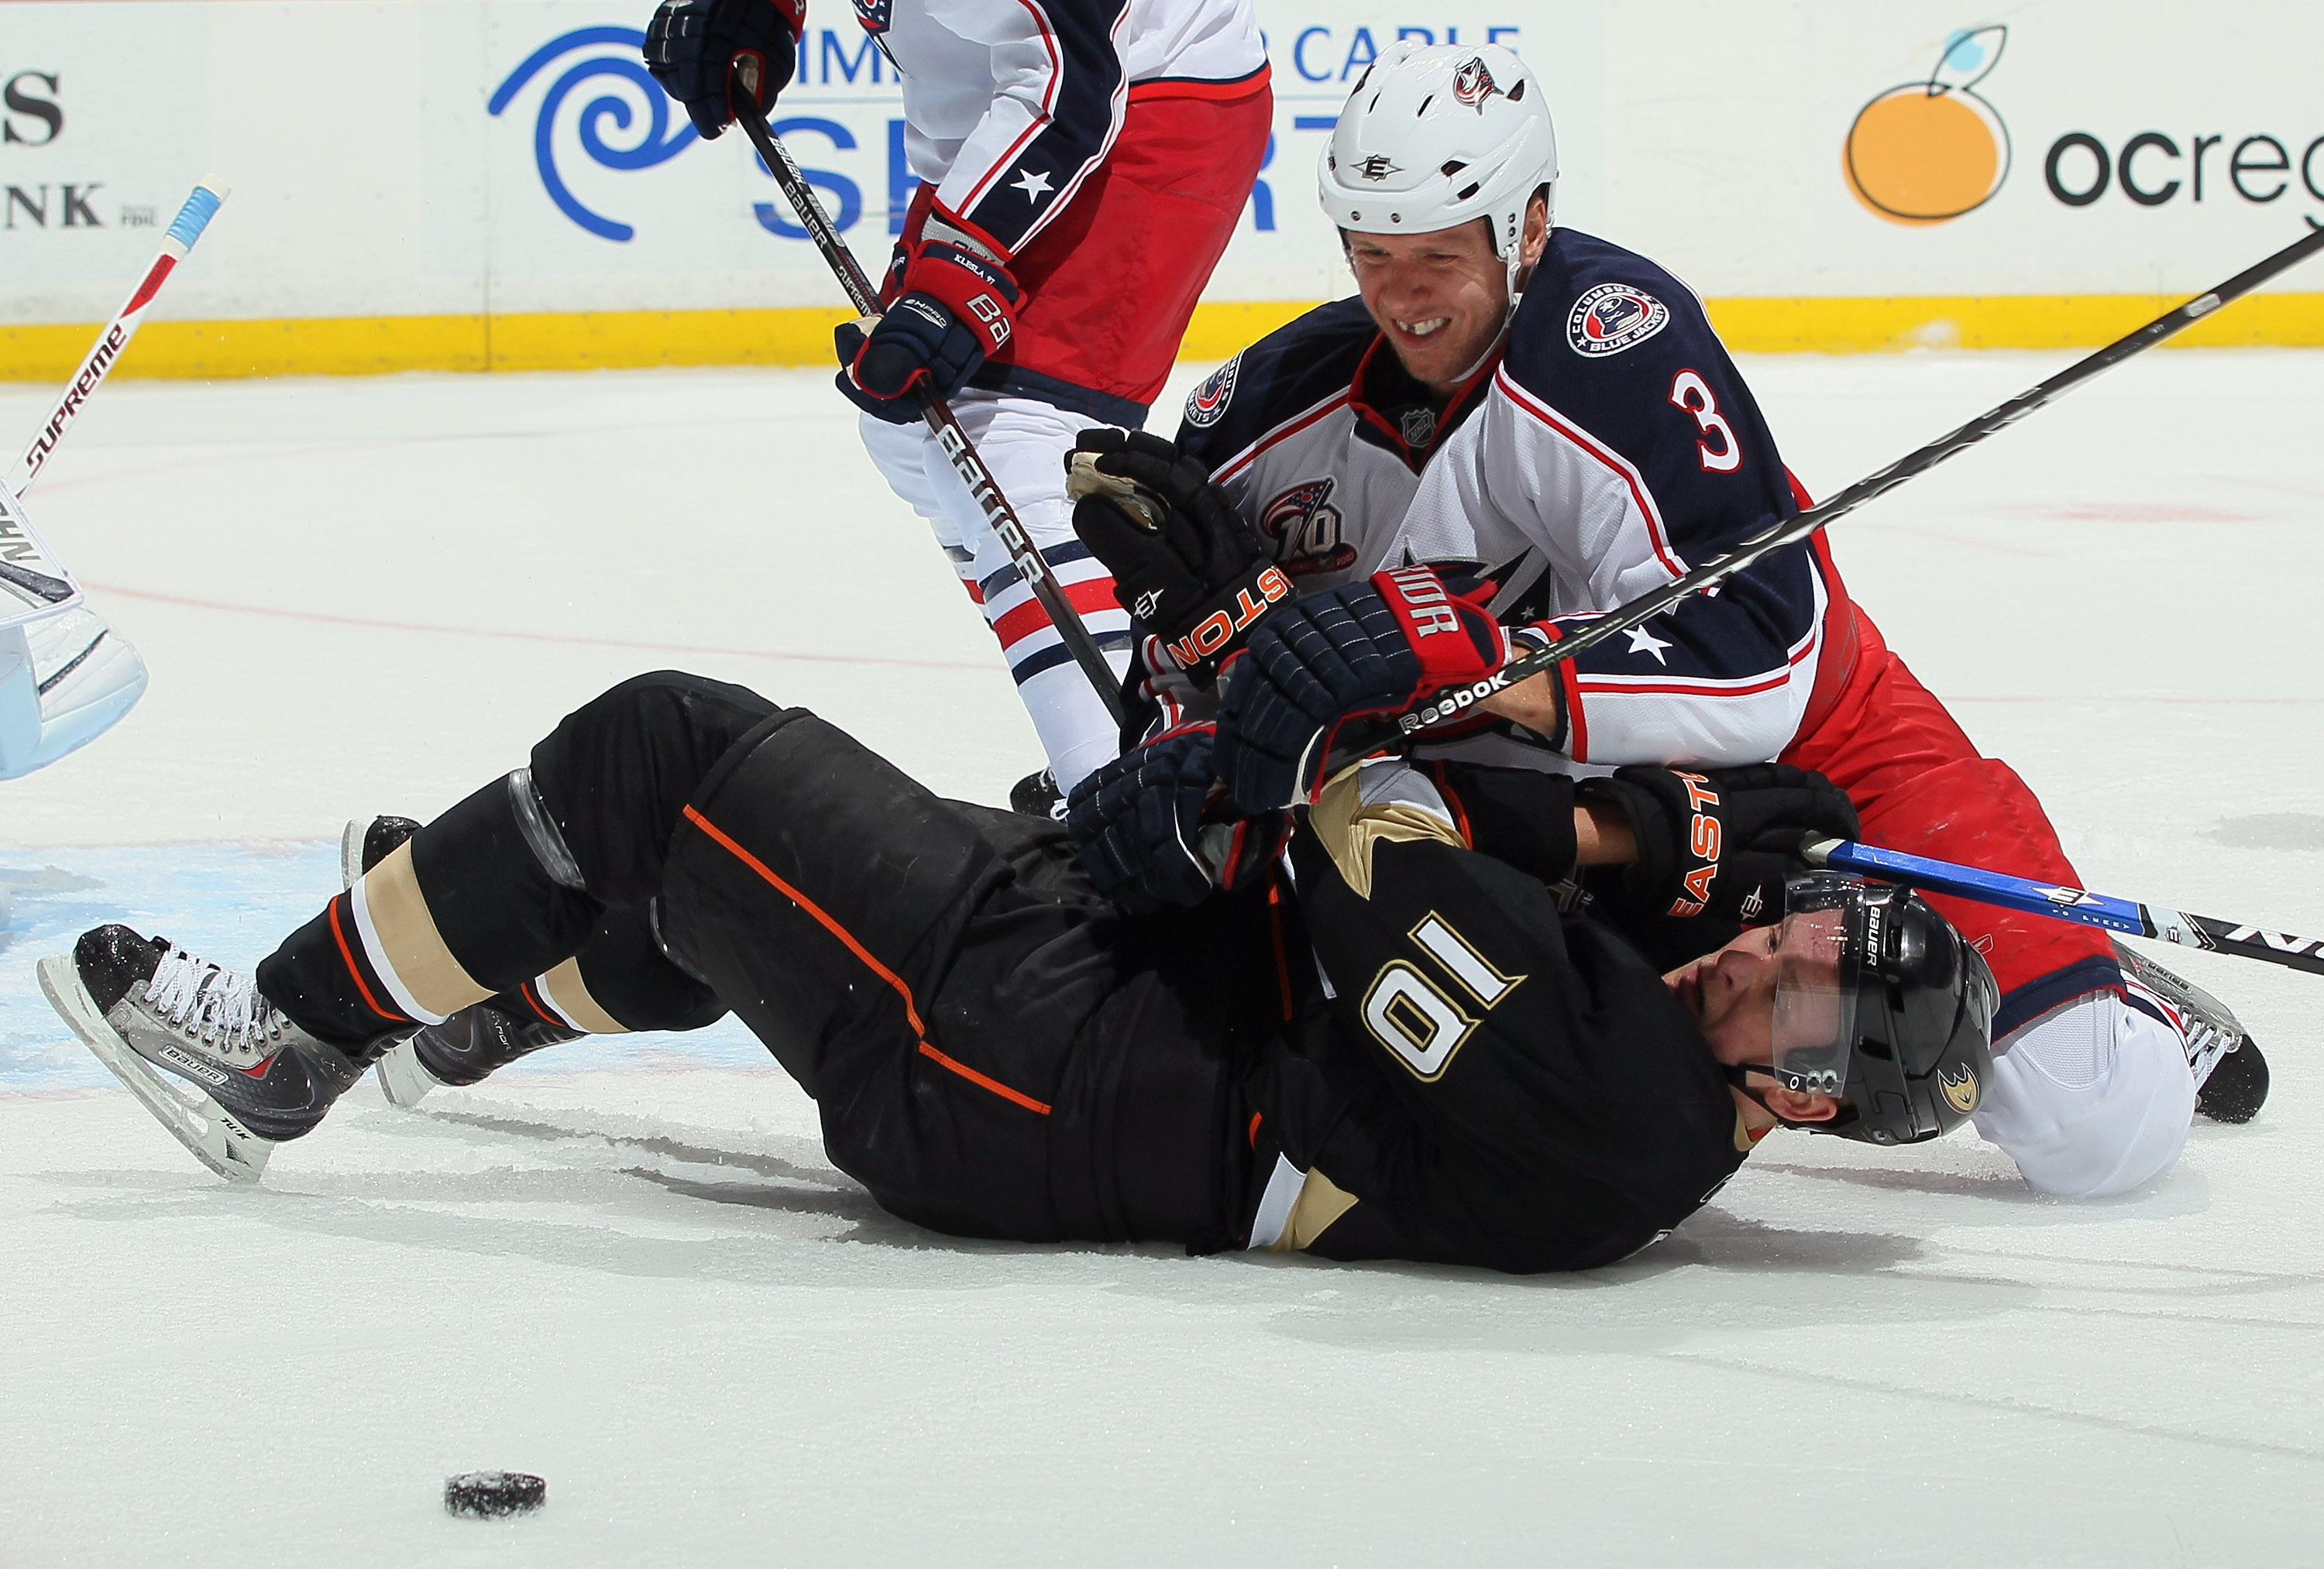 ANAHEIM, CA - NOVEMBER 19:  Marc Methot #3 of the Columbus Blue Jackets and Corey Perry #10 of the Anaheim Ducks get tangled up during the first period at the Honda Center on November 19, 2010 in Anaheim, California.  (Photo by Jeff Gross/Getty Images)